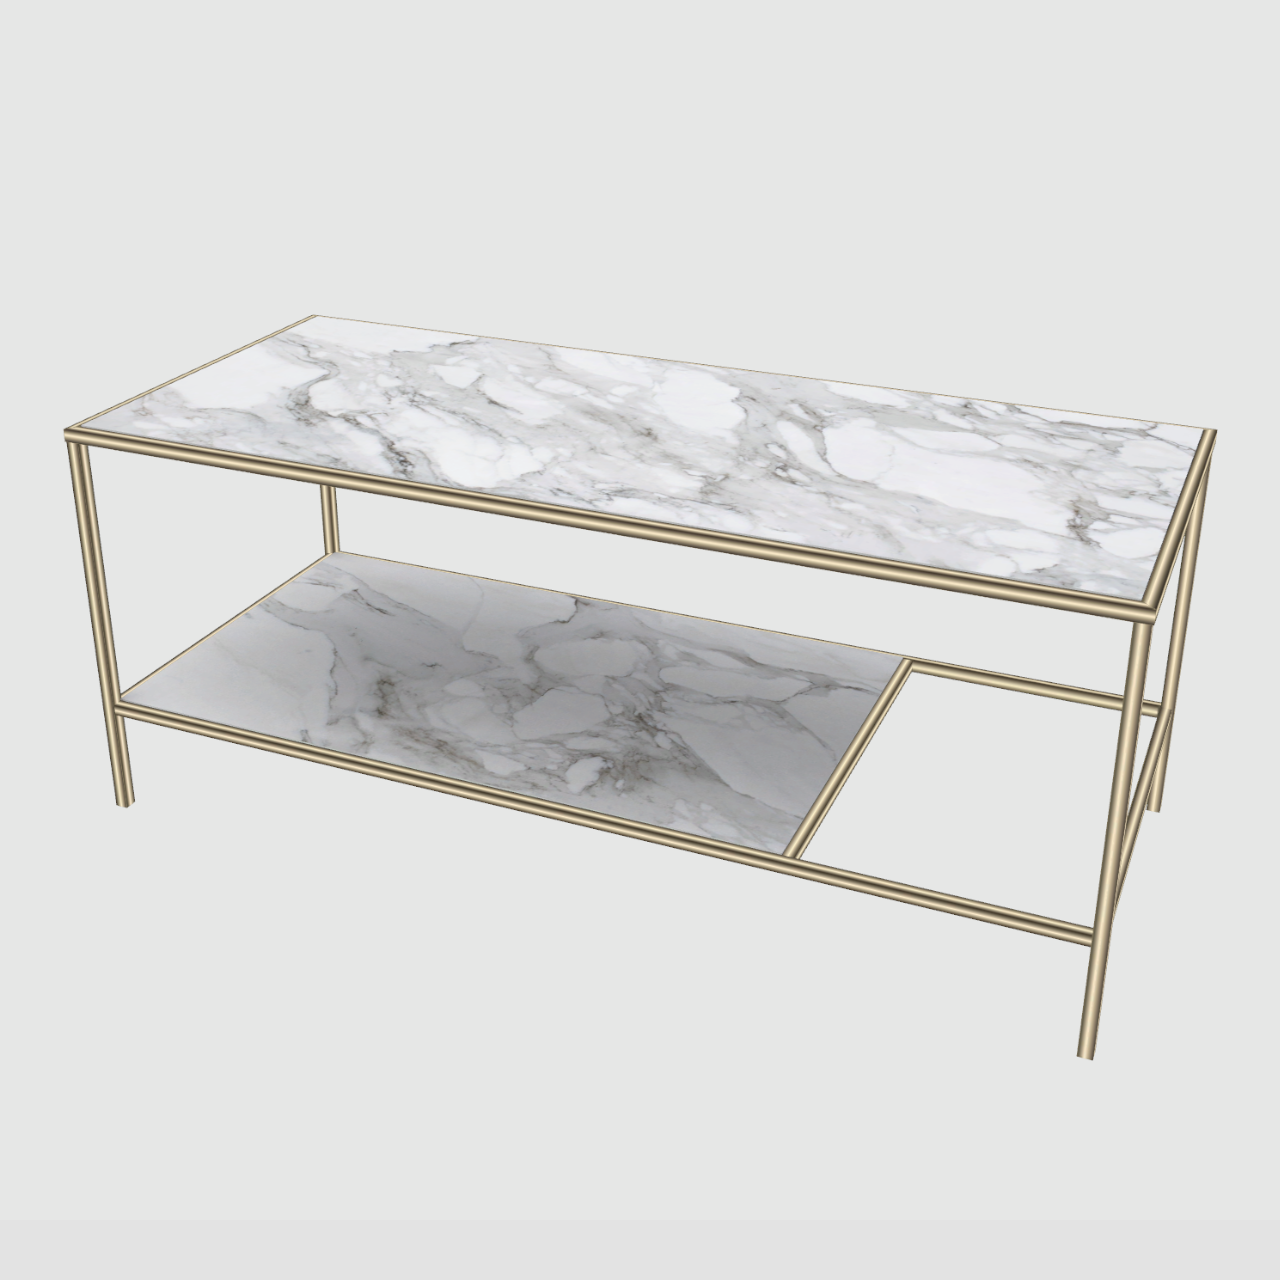 Heurrs Pandrup Set First Milestone Gift Is Now Marble Coffee Table Side Table Decor Coffee Table [ 1280 x 1280 Pixel ]